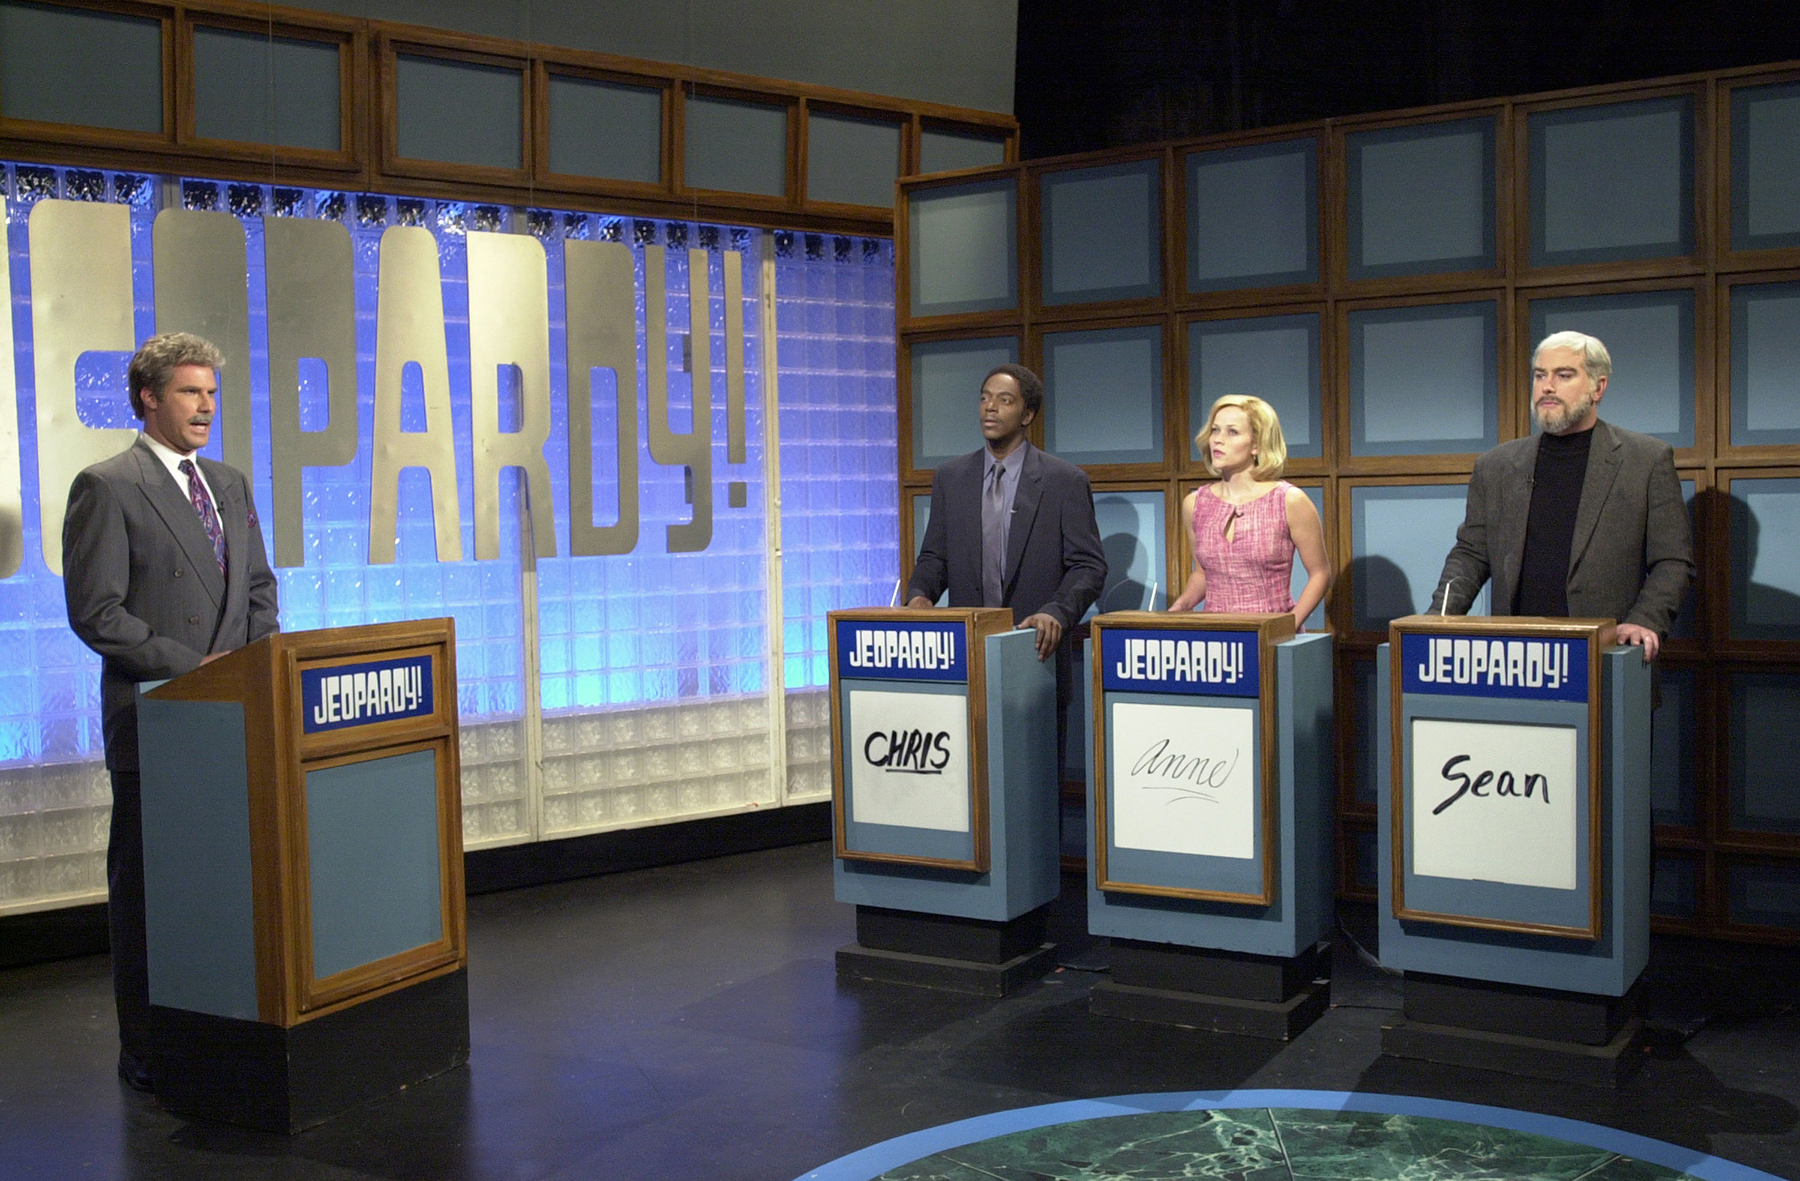 """SATURDAY NIGHT LIVE -- Episode 1 -- Air Date 09/29/2001 -- Pictured: (l-r) Will Ferrell as Alex Trebek, Dean Edwards as Chris Tucker, Reese Witherspoon as Anne Heche, Darrell Hammond as Sean Connery during the """"Jeopardy!"""" skit on September 29, 2001 -- Photo by: Dana Edelson/NBCU Photo Bank"""